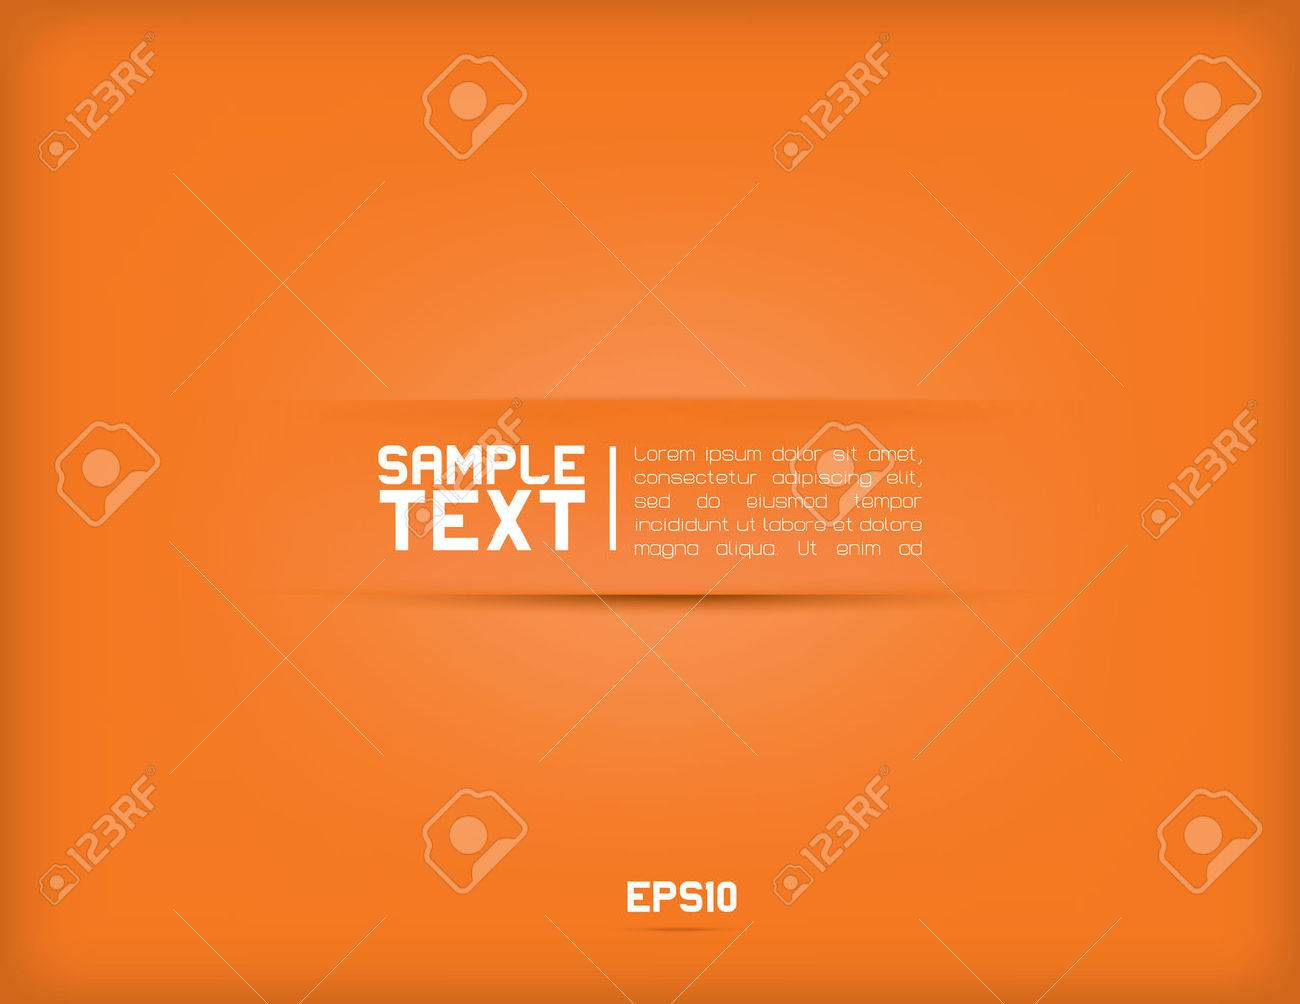 Modern minimalistic vector background for text - 43945727